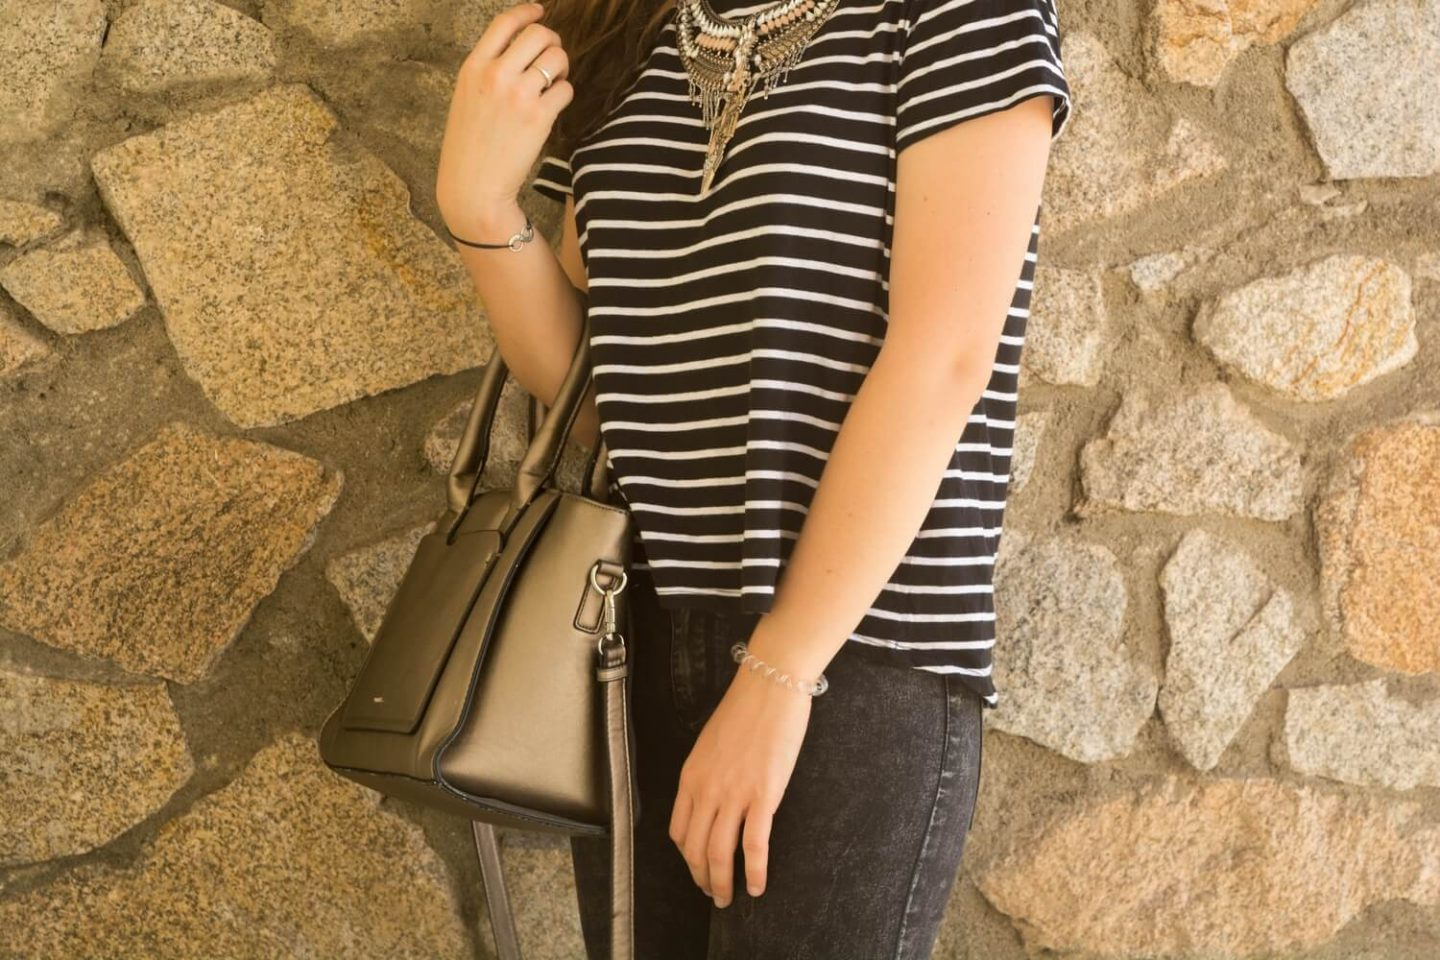 New #outfit - Casual for work   happinesscoco.com